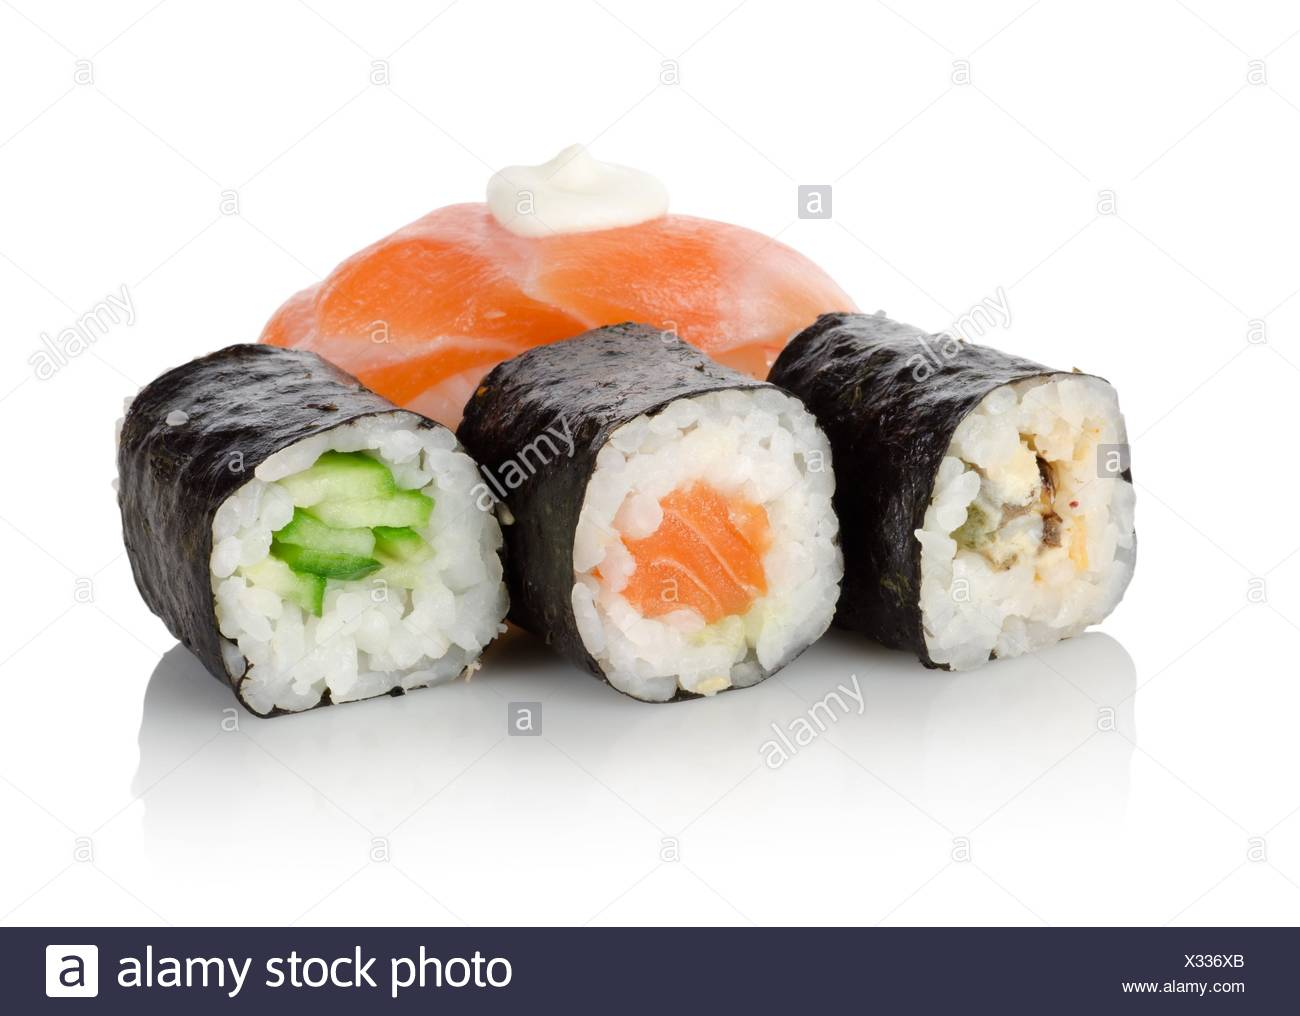 Sushi and rolls isolated on a white background. - Stock Image